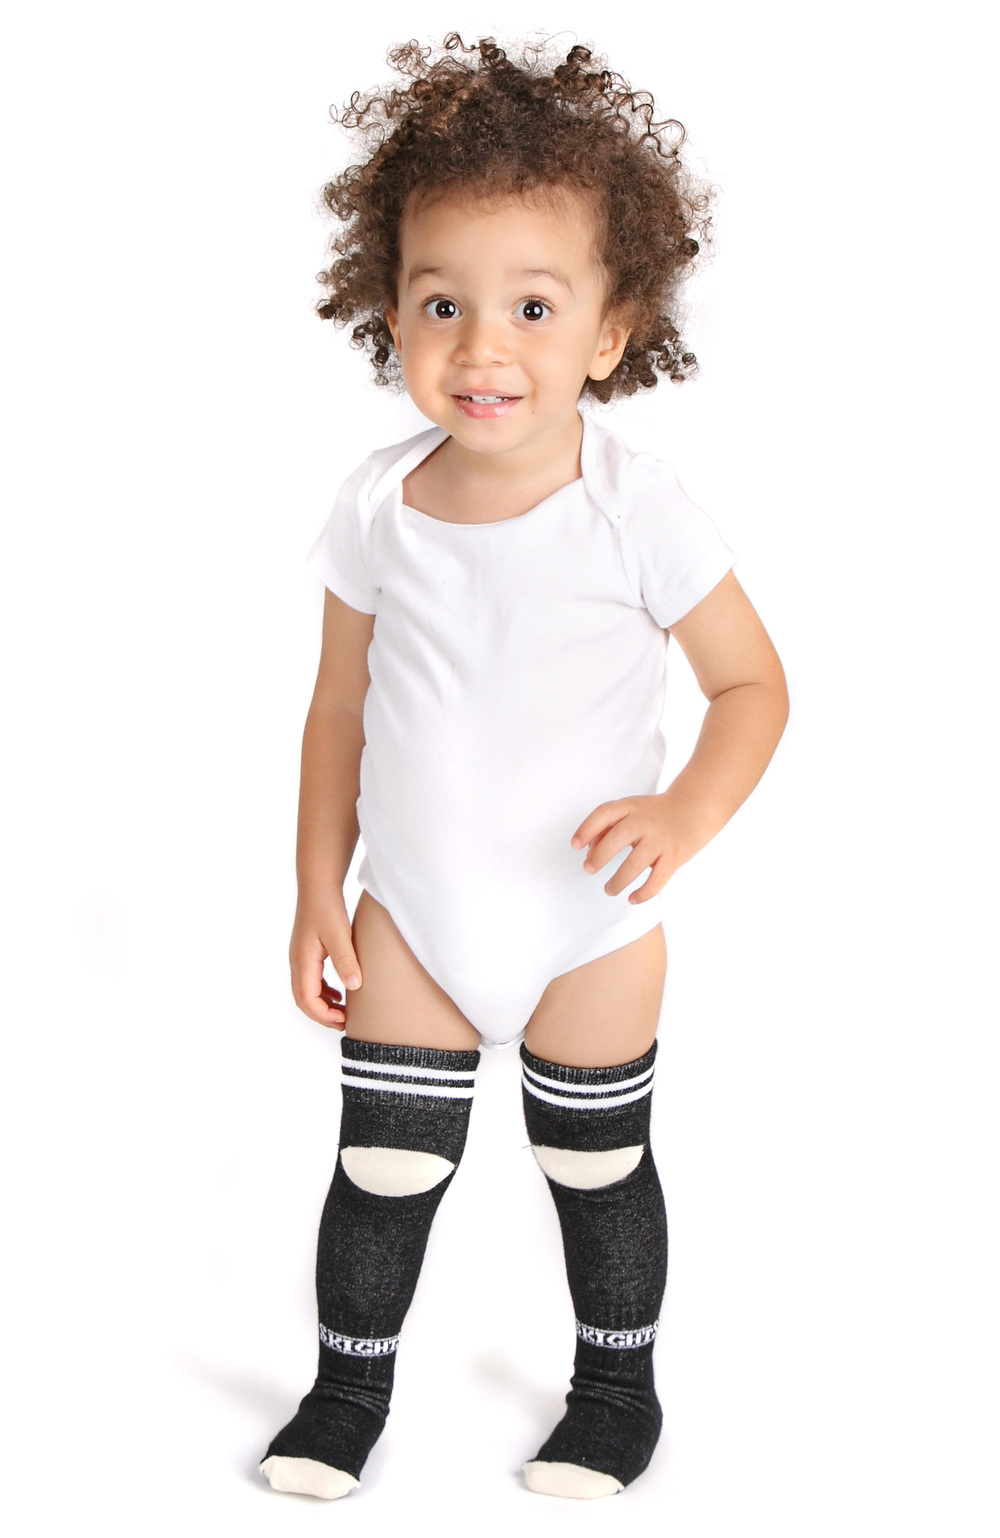 eViewVillage:  Shop at Skights for Children's Clothing - Fashion Accessories - Socks